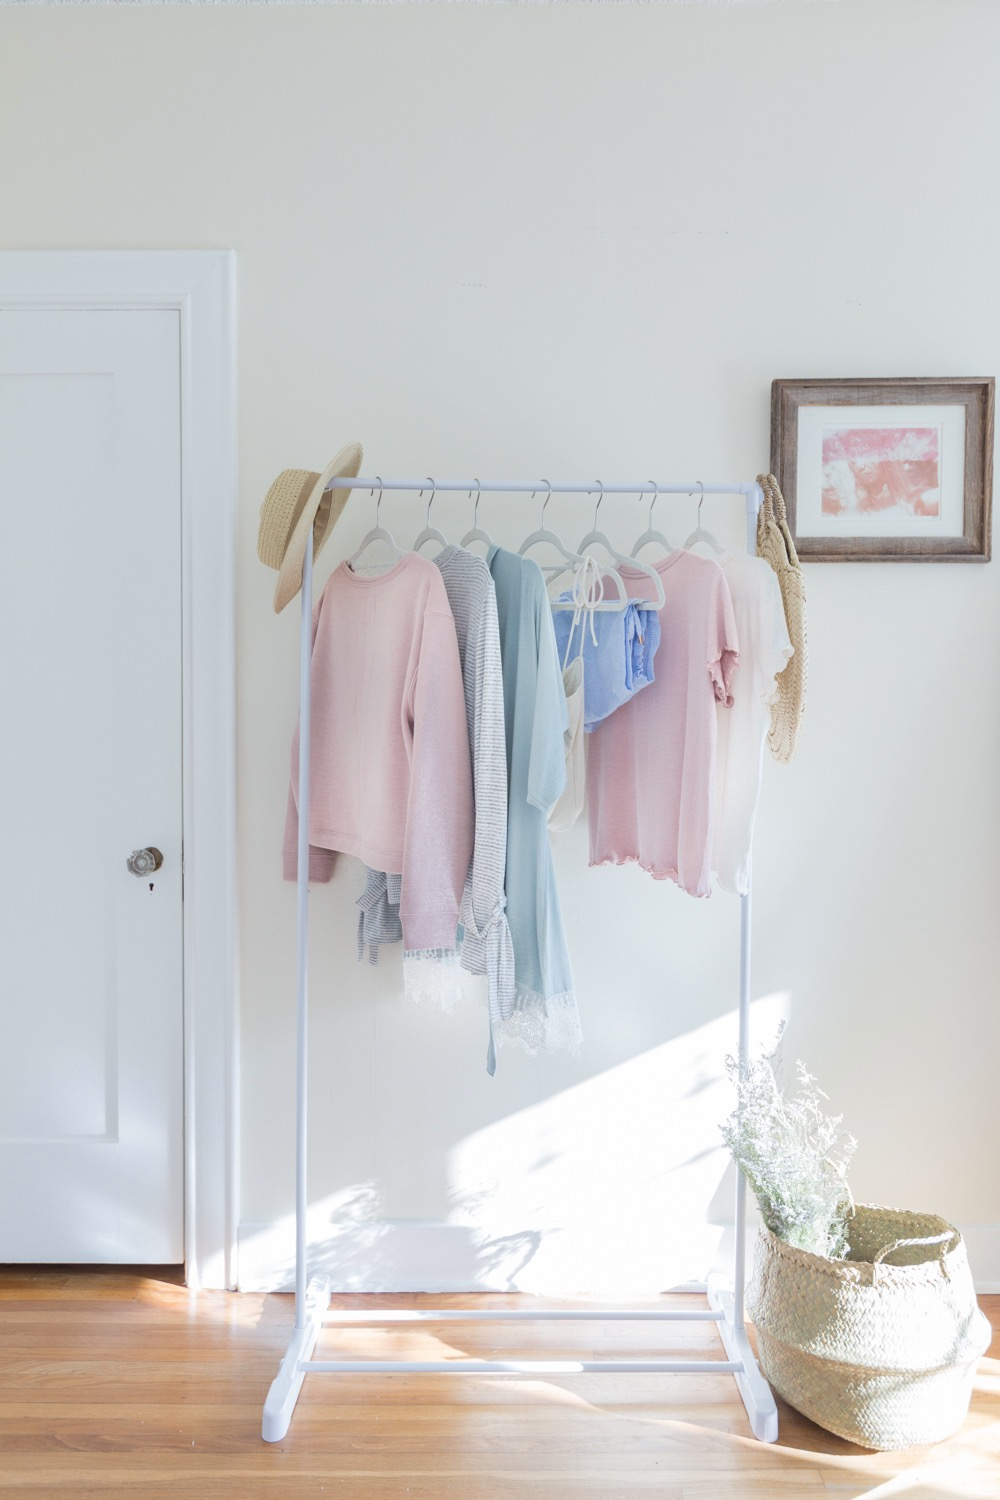 How To Style A Clothing Rack